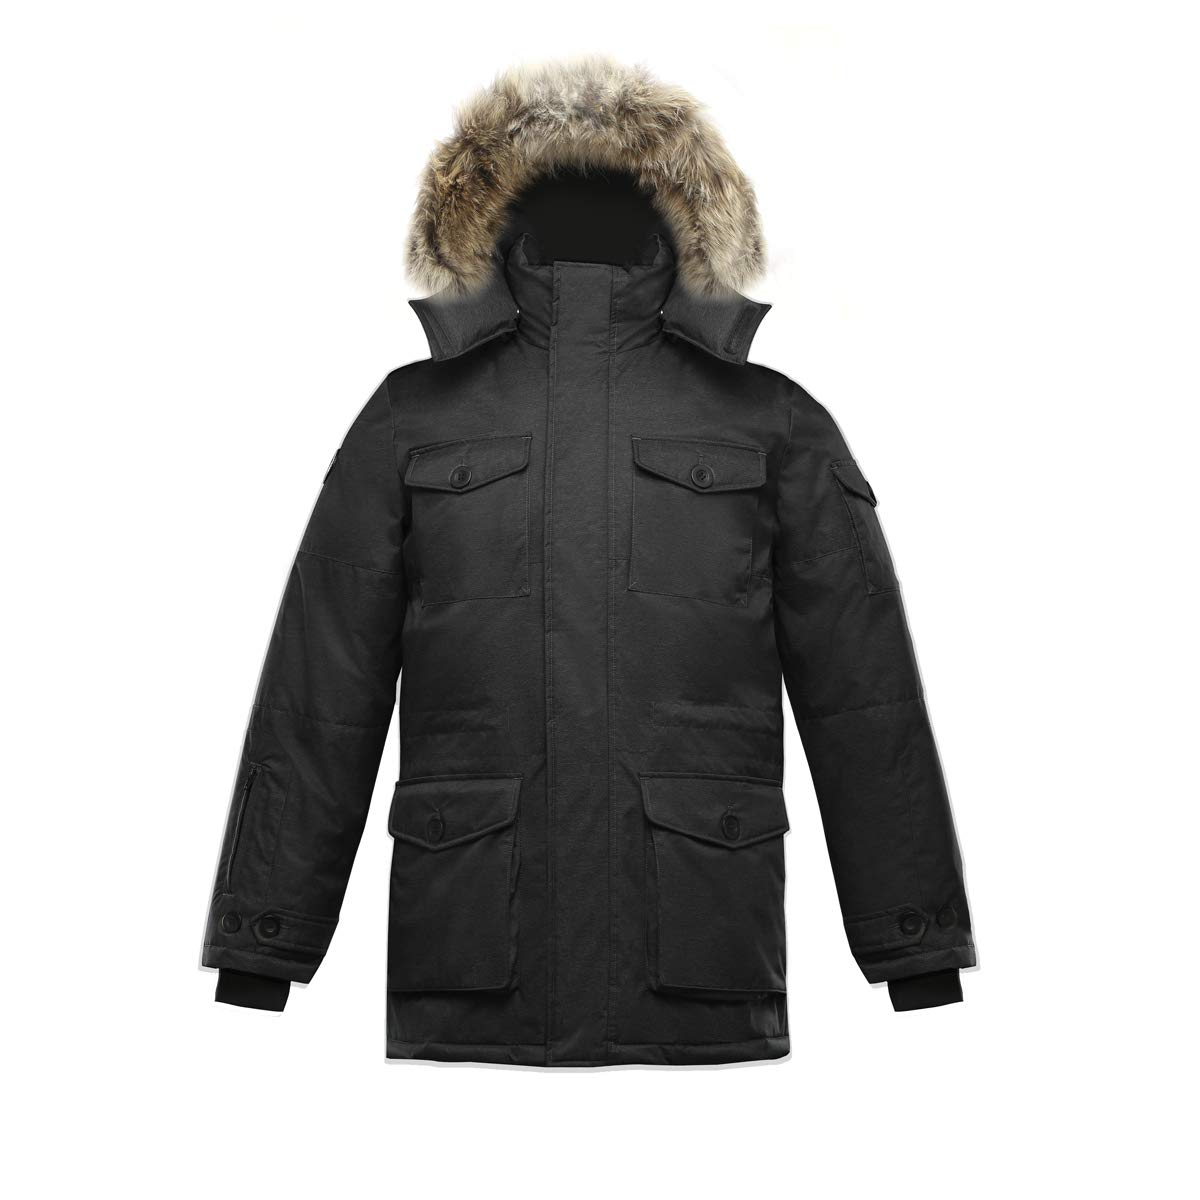 Triple F.A.T. Goose SAGA Collection   Eldridge Mens Hooded Goose Down Jacket Parka with Real Coyote Fur